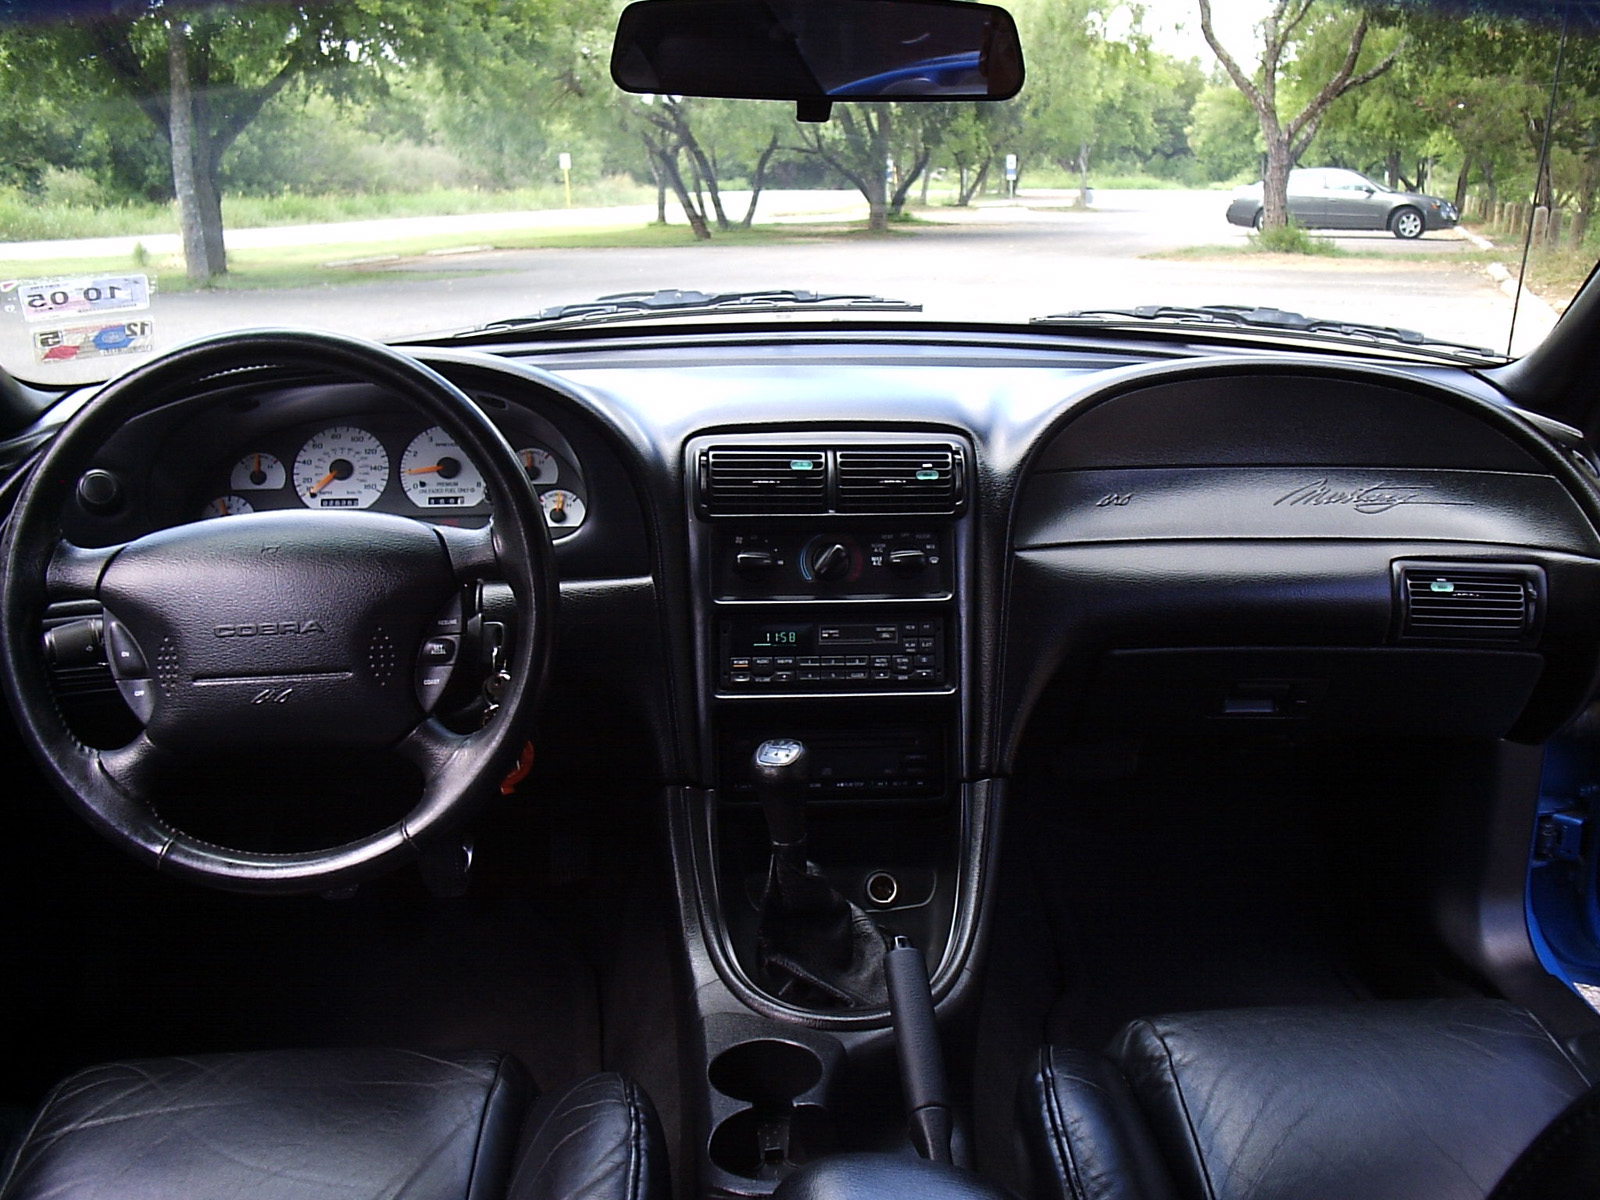 1998 Cobra Interior Ford Mustang Photo Gallery